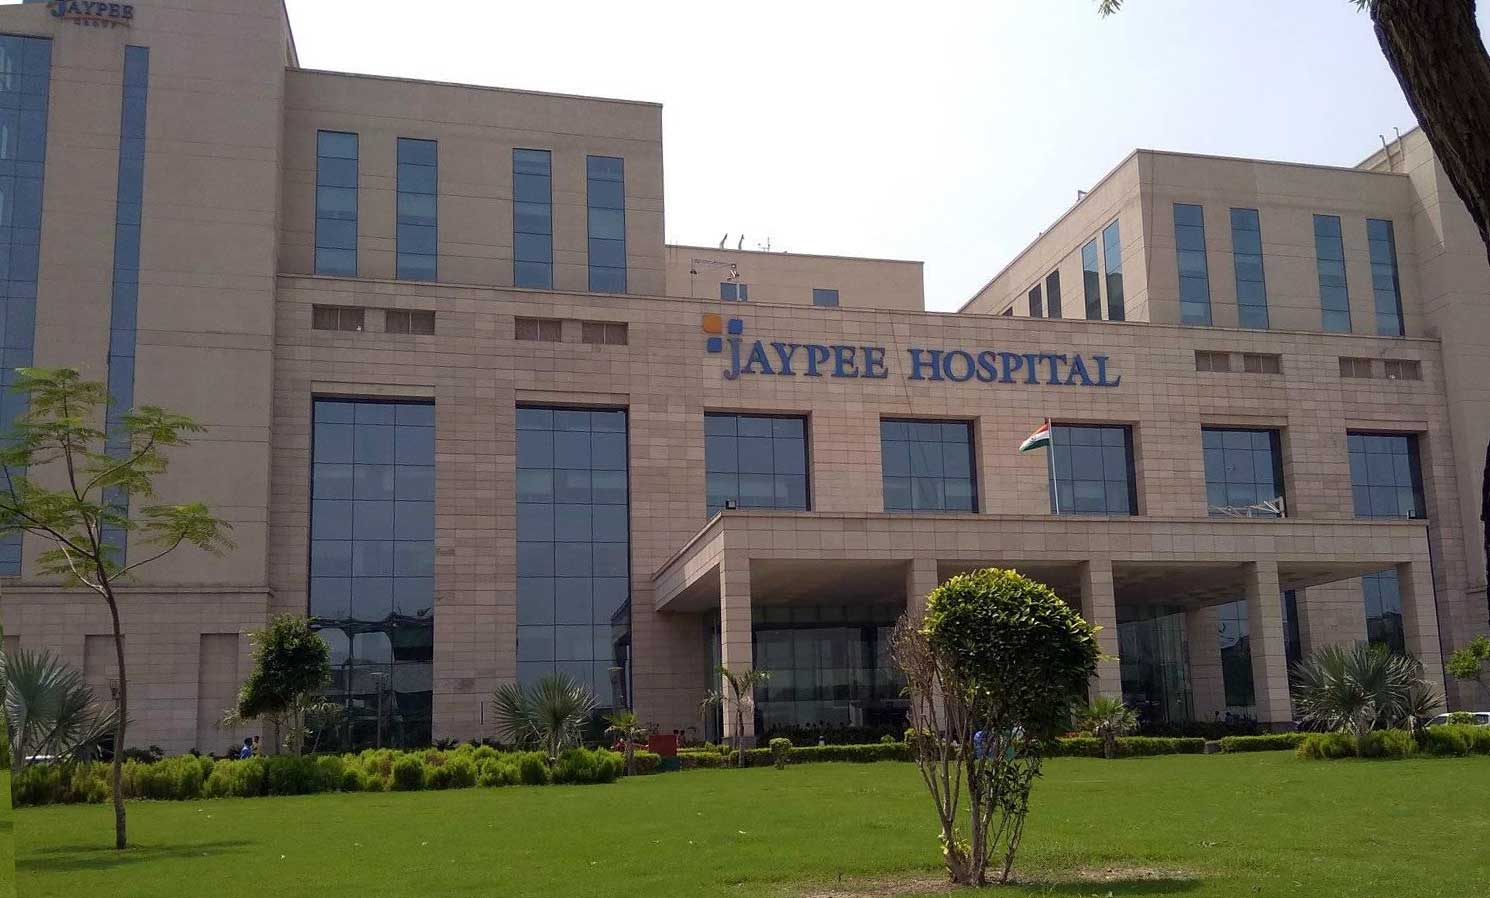 How Jaypee Hospital Is Using 3D Imaging Technology To Improve Their Interventional Radiology Procedures